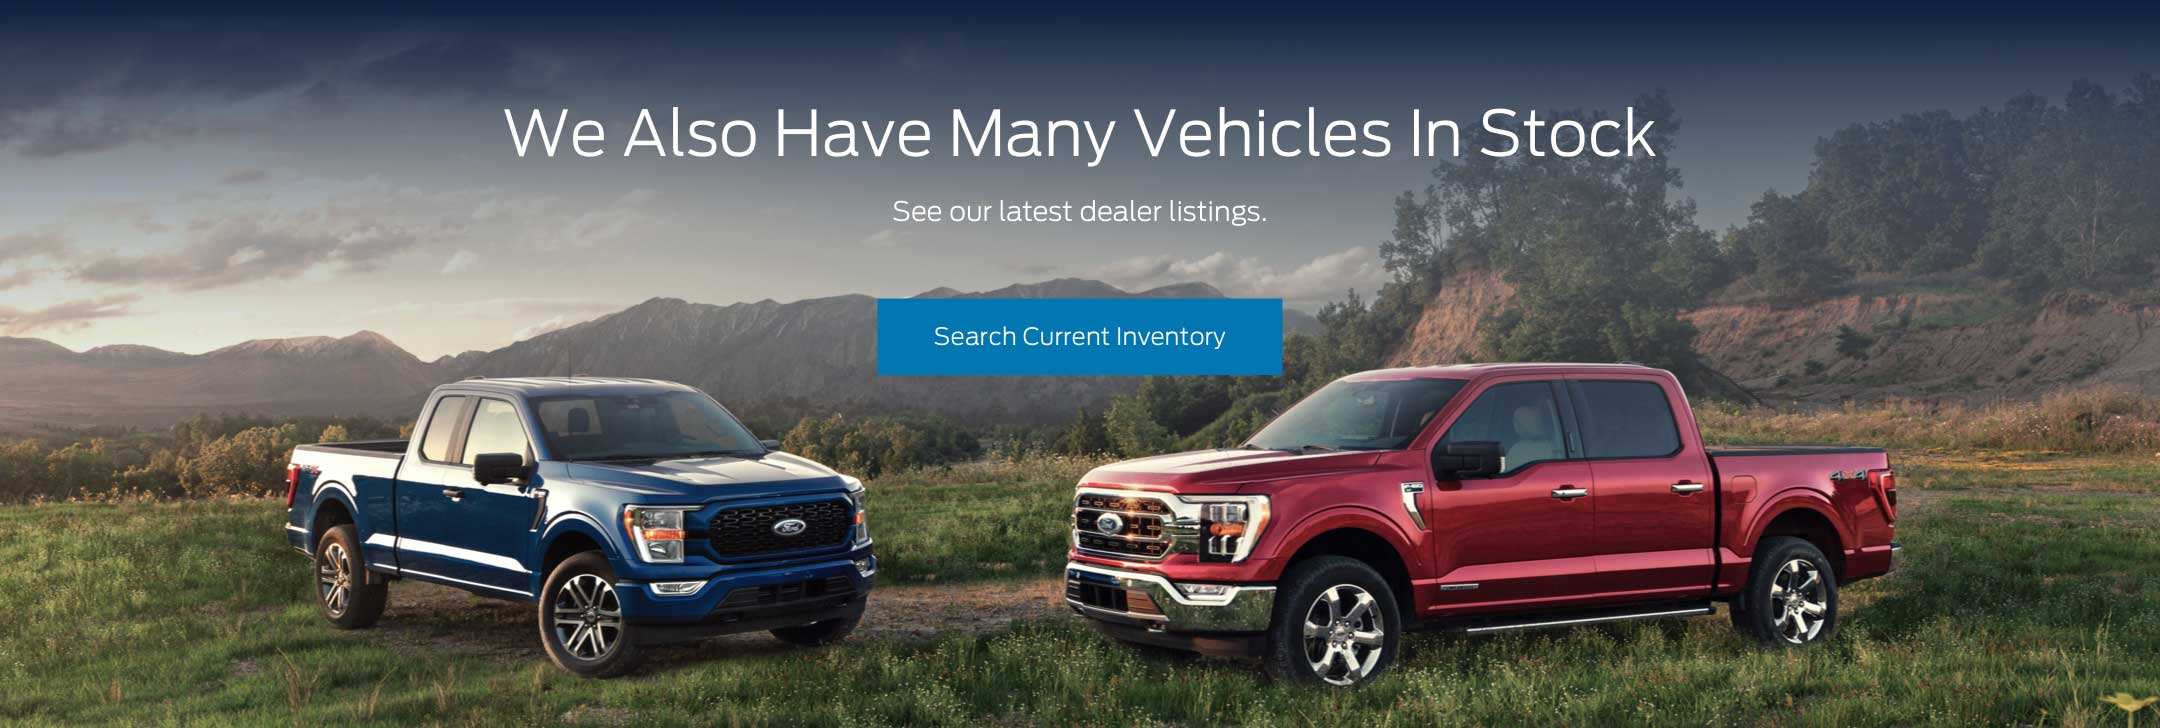 We Have Many Vehicles in Stock, See our latest listings.